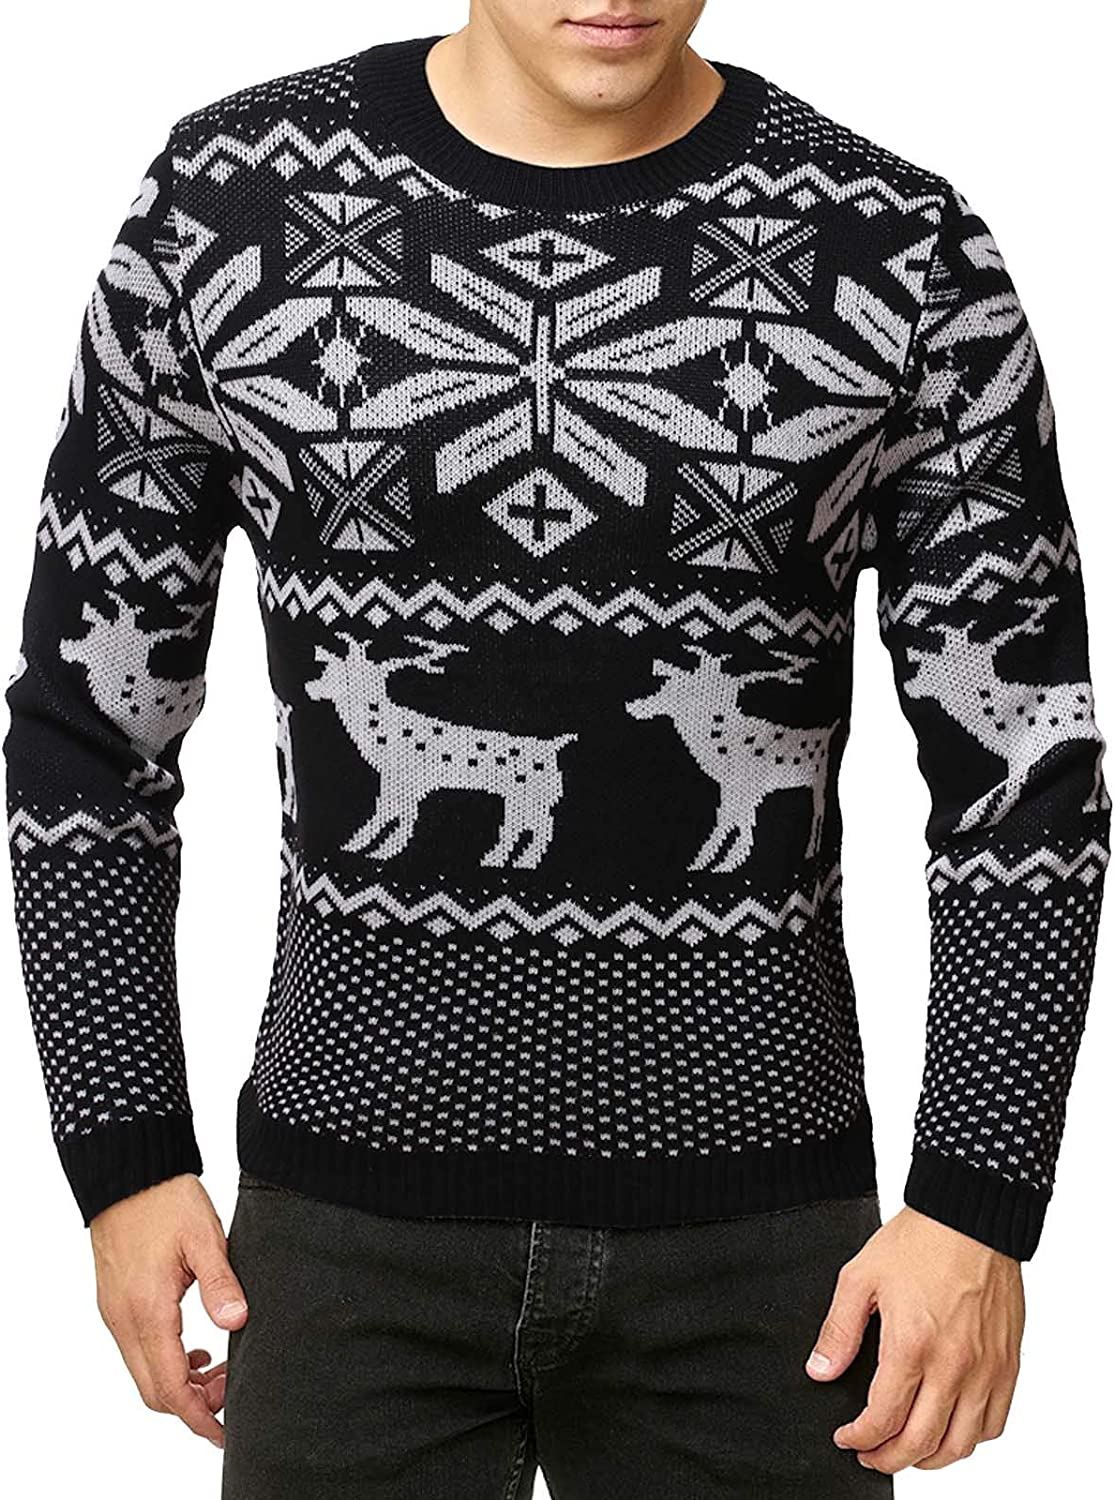 Men's Autumn Winter Long Sleeve Animal Printed Round Neck Pullover Top Tee Sweater Blouse